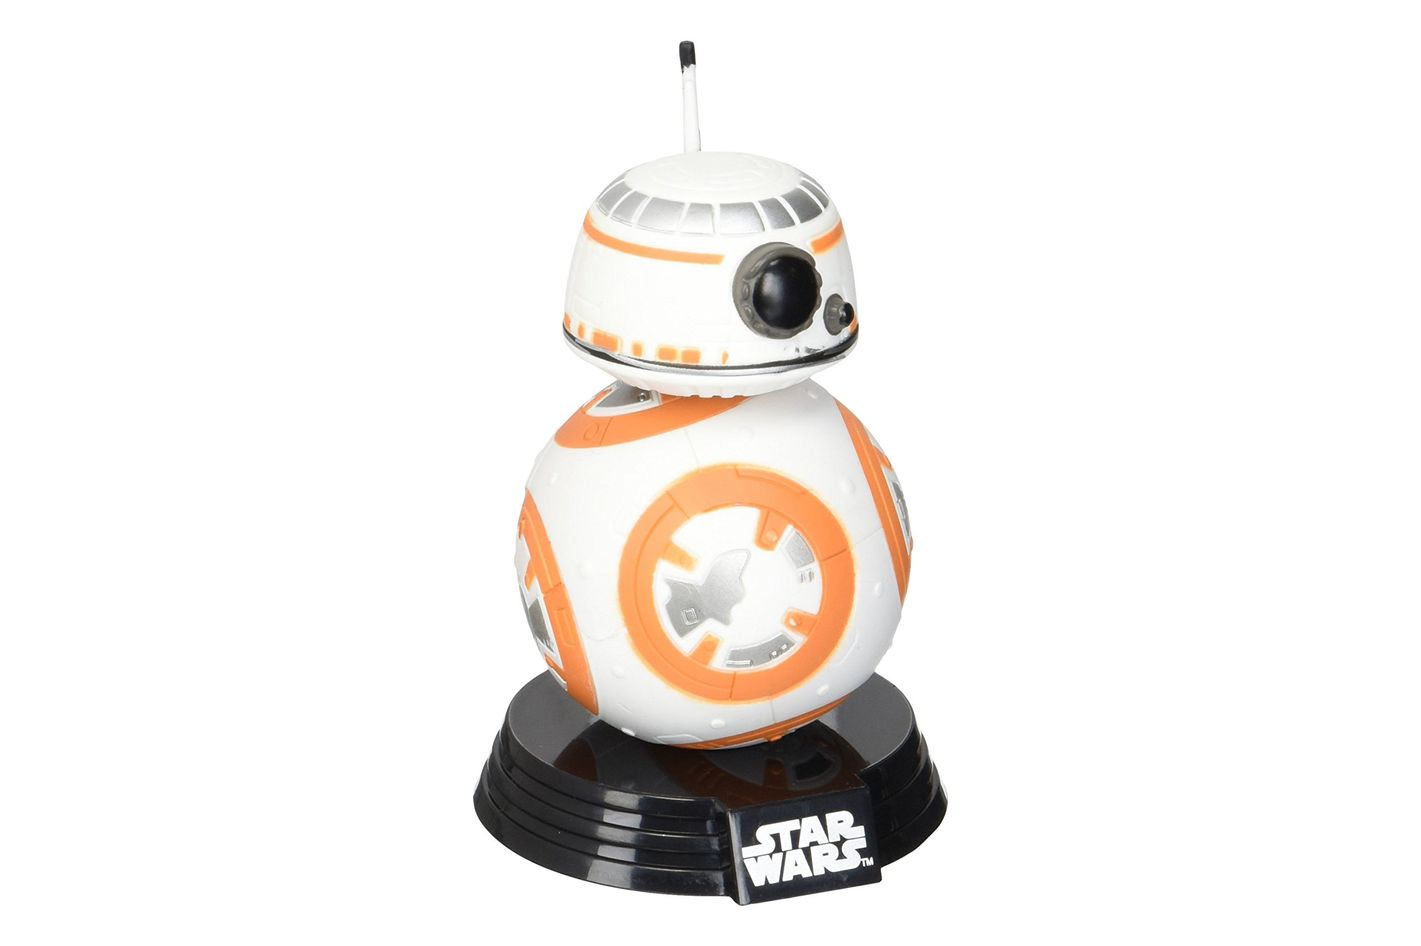 Funko Pop Star Wars BB-8 Bobble Head